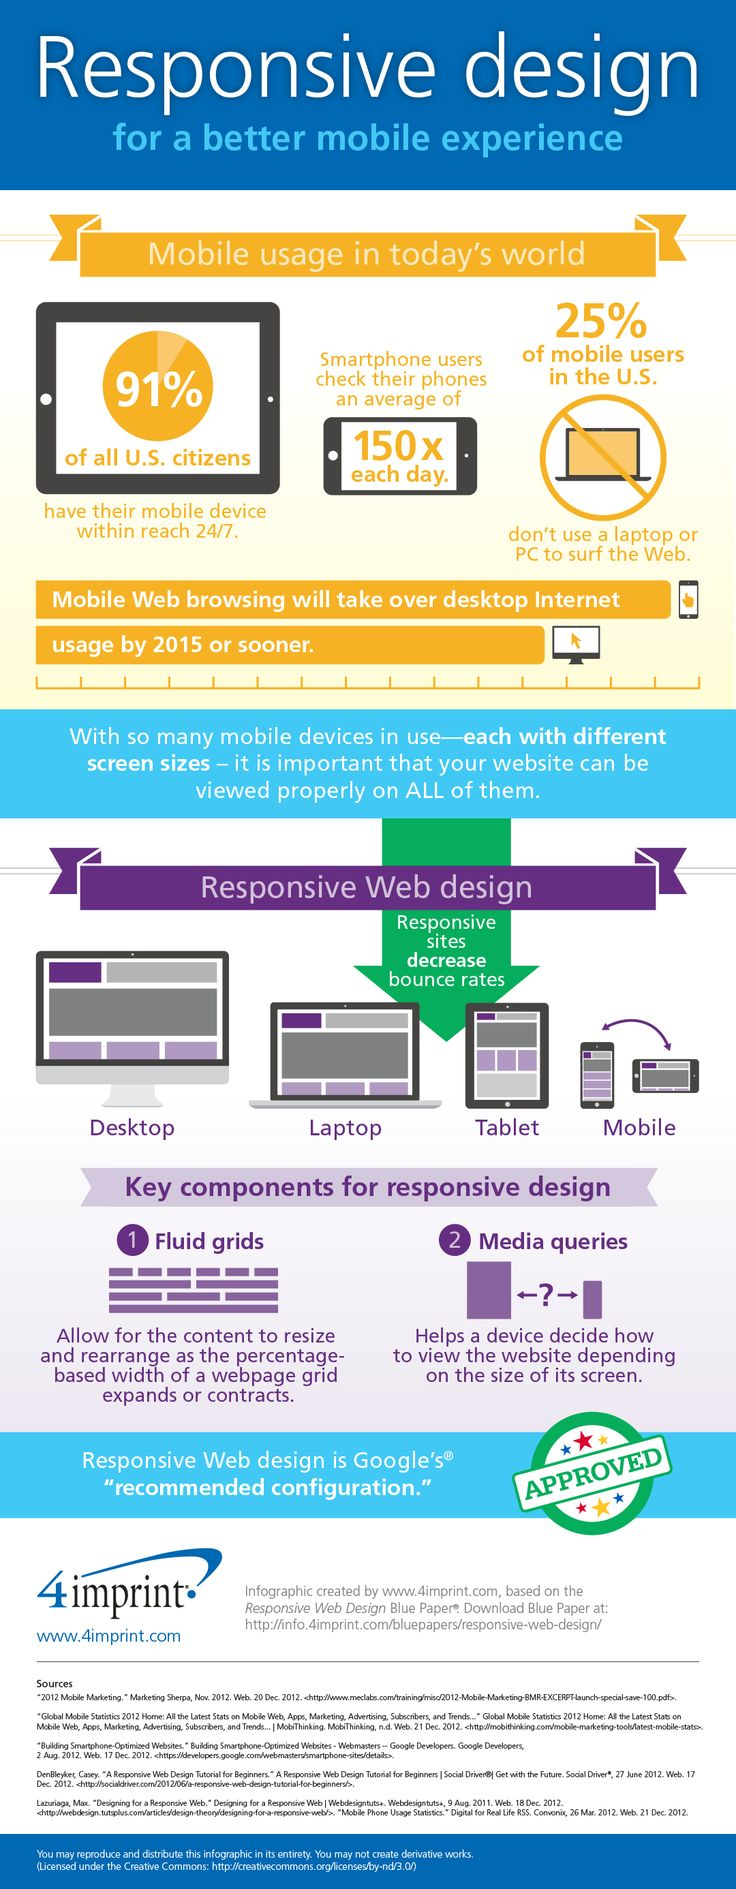 Responsive design for a better mobile experience [infographic]